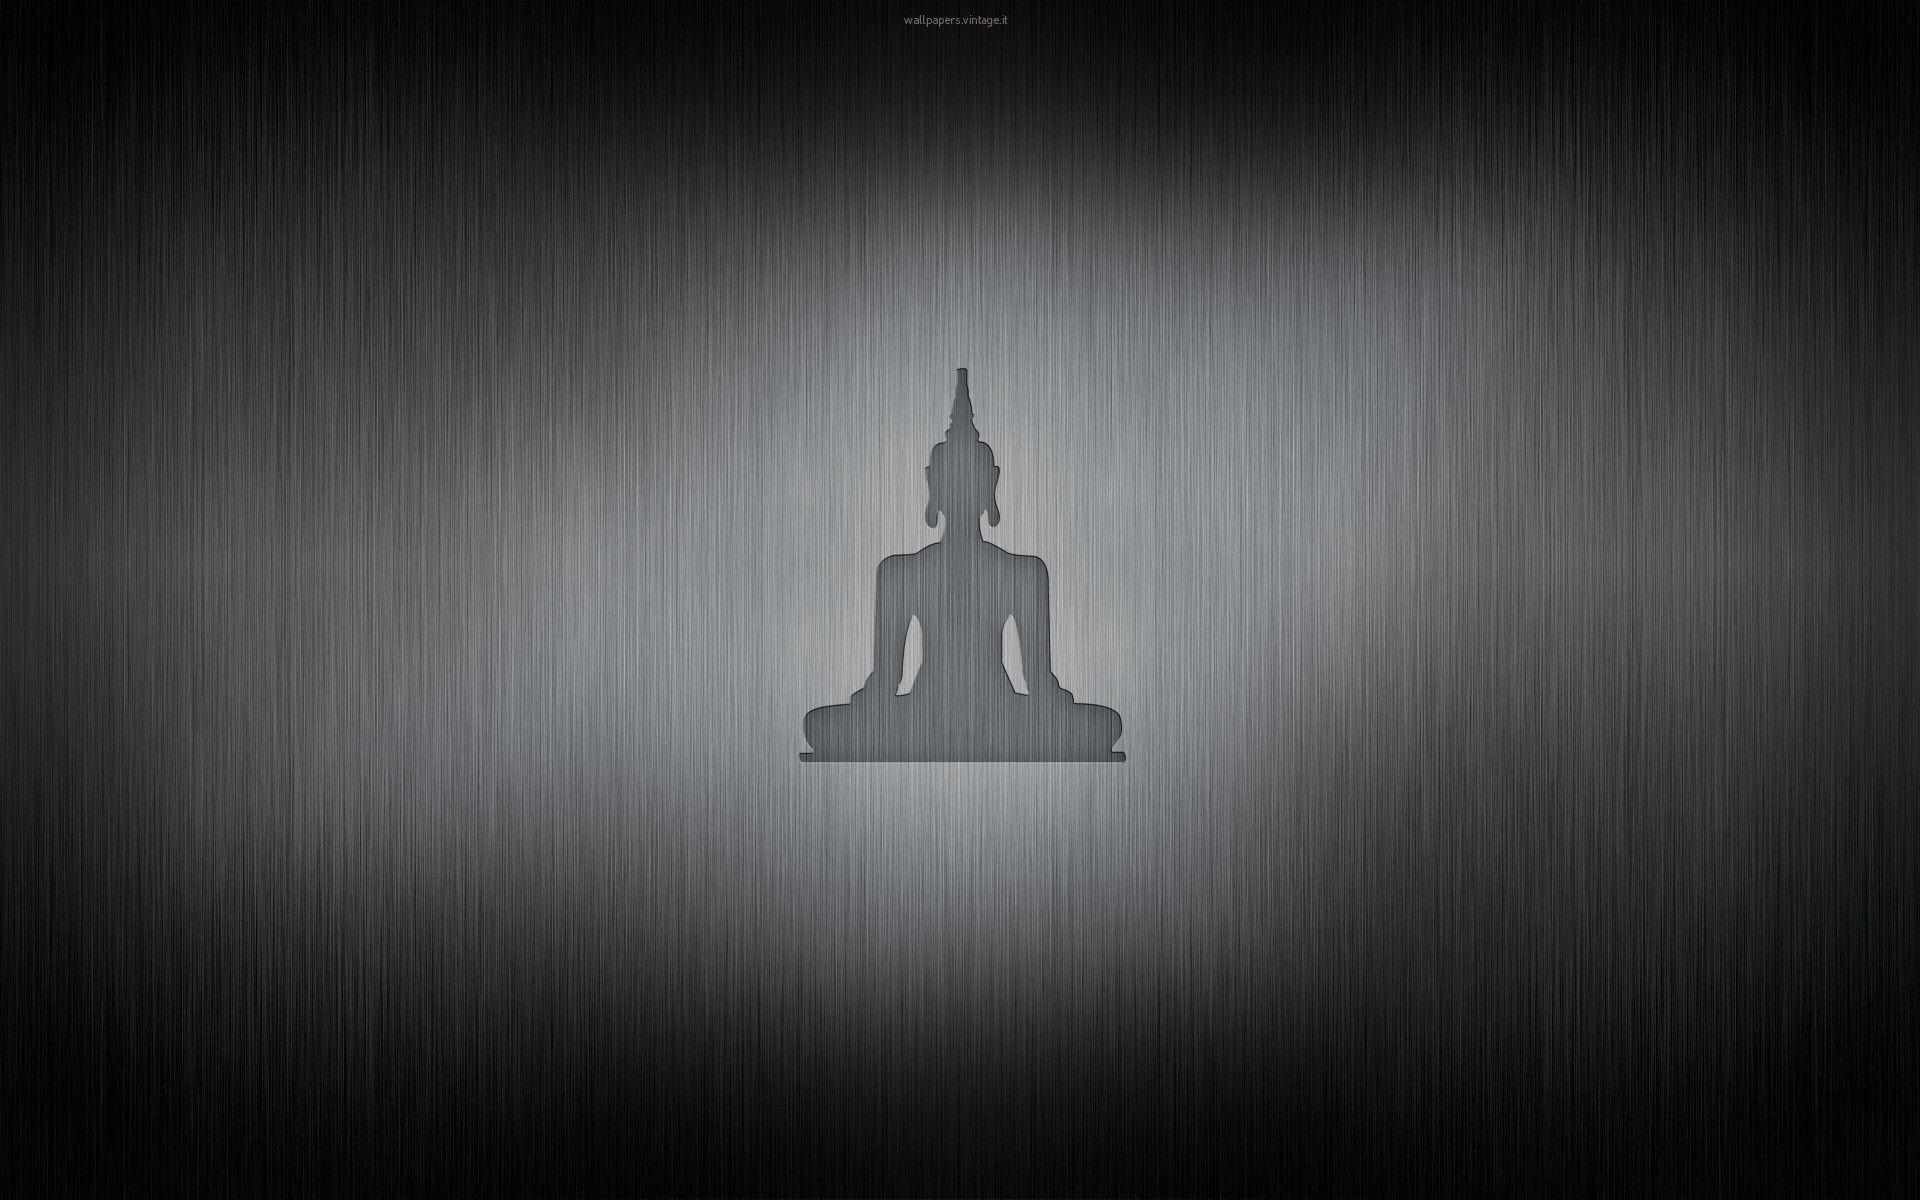 Buddha wallpaper - Free Desktop HD iPad iPhone wallpapers